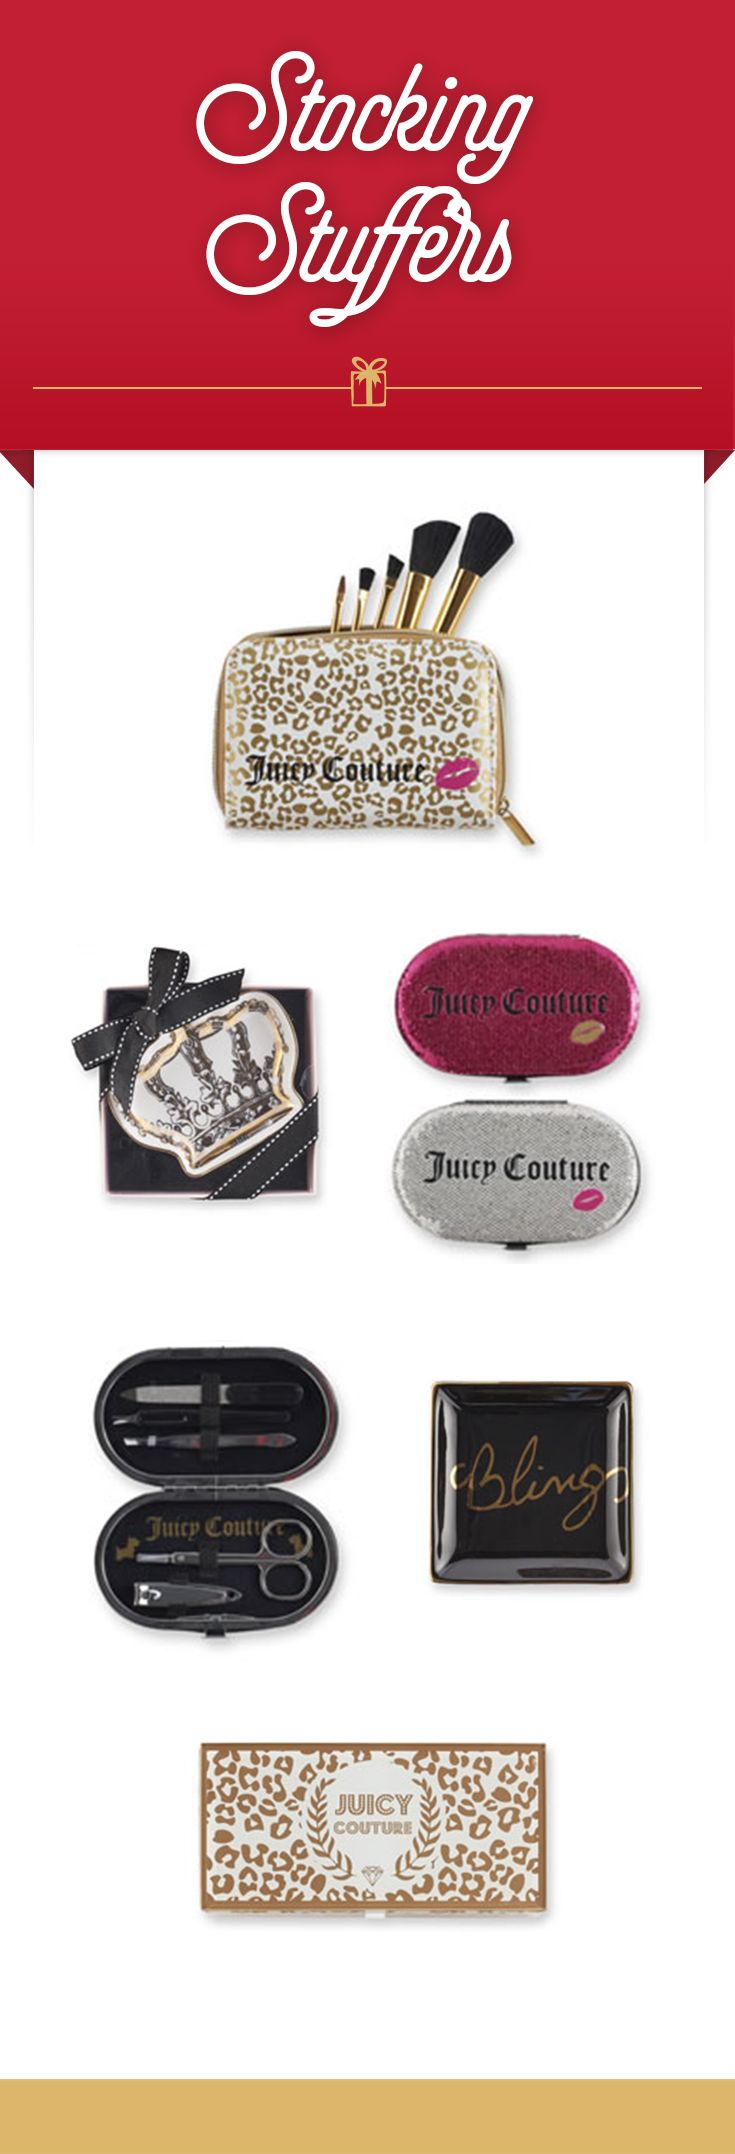 Glam up the holidays with glitzy stocking stuffers from Juicy Couture. Top to bottom: leopard-print makeup bag, crown trinket tray, manicure sets, bling trinket tray and glass jewelry box. Find these glam gifts and more at Kohl's.